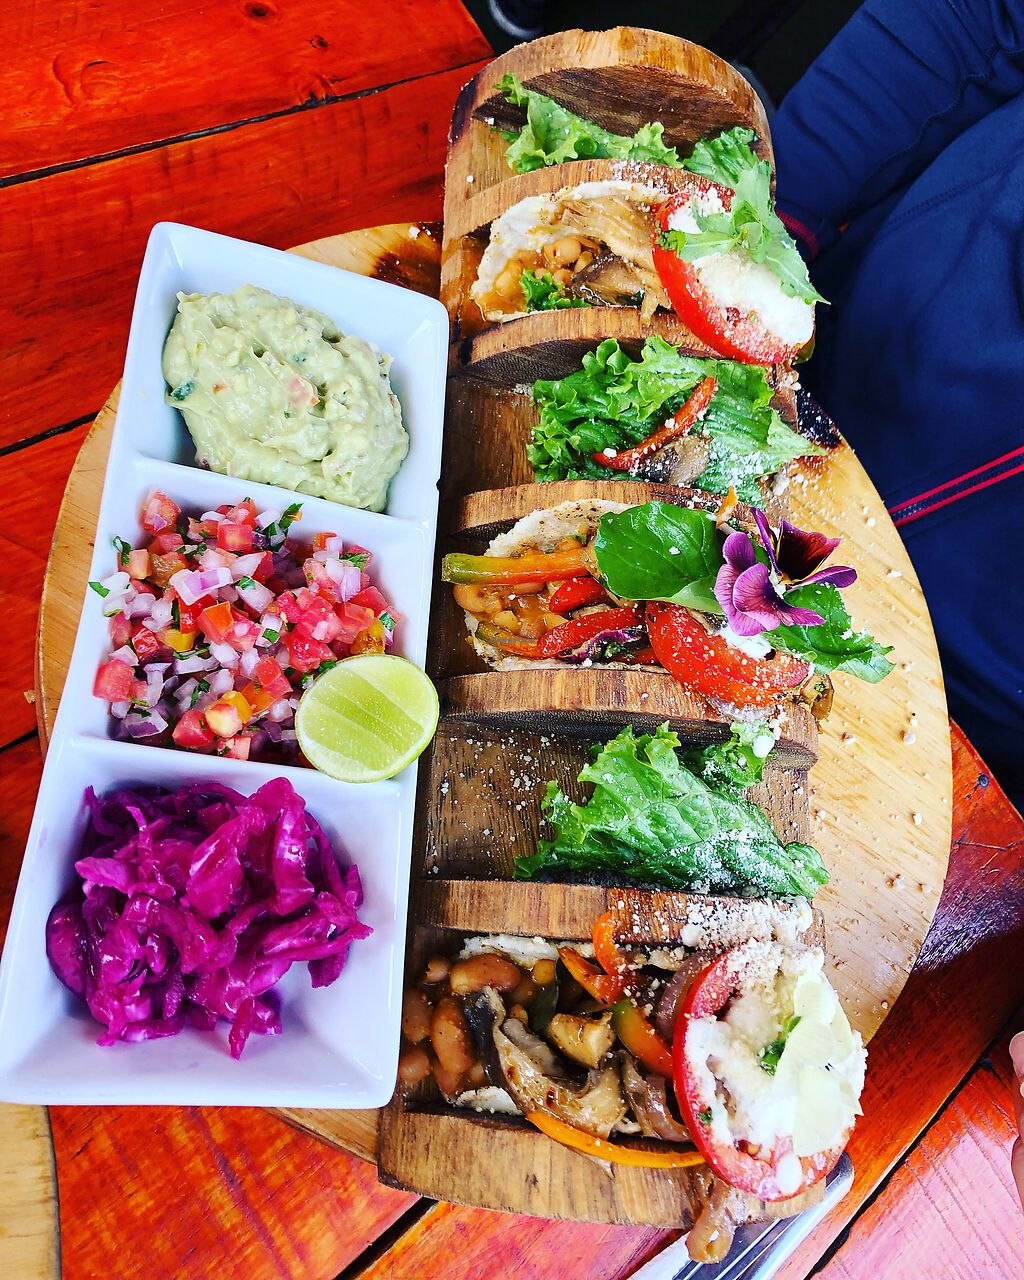 """Photo of Green Point  by <a href=""""/members/profile/Elsvogelpoel"""">Elsvogelpoel</a> <br/>Tacos <br/> April 14, 2018  - <a href='/contact/abuse/image/39623/385768'>Report</a>"""